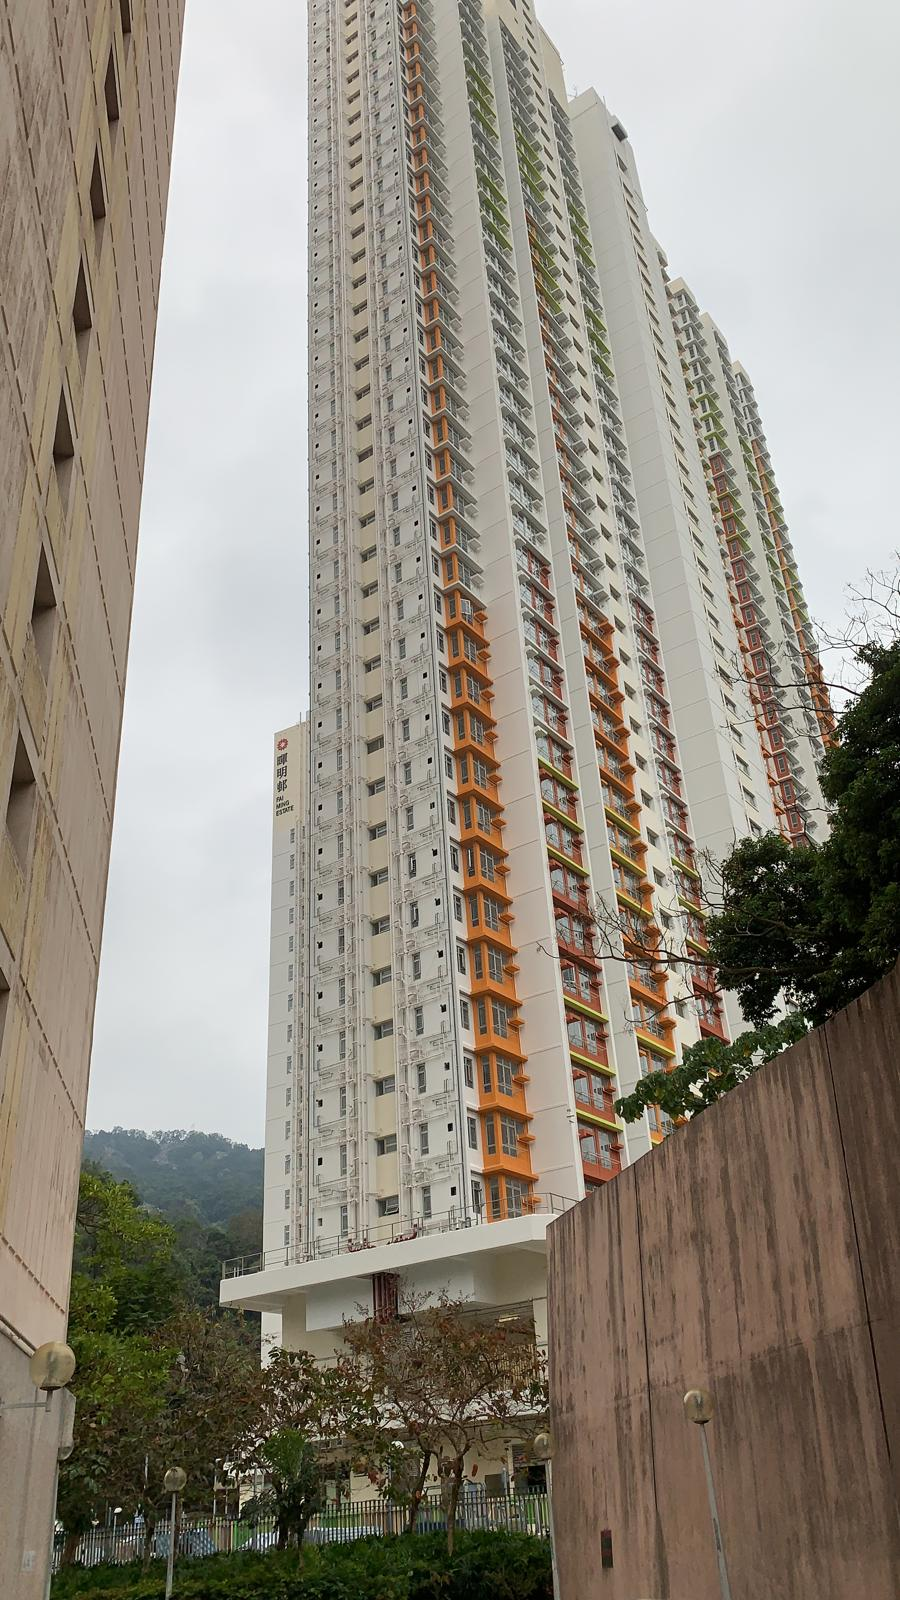 The Fai Ming Estate will turn into a place to quarantine and observe people who have been in close contact with confirmed cases.